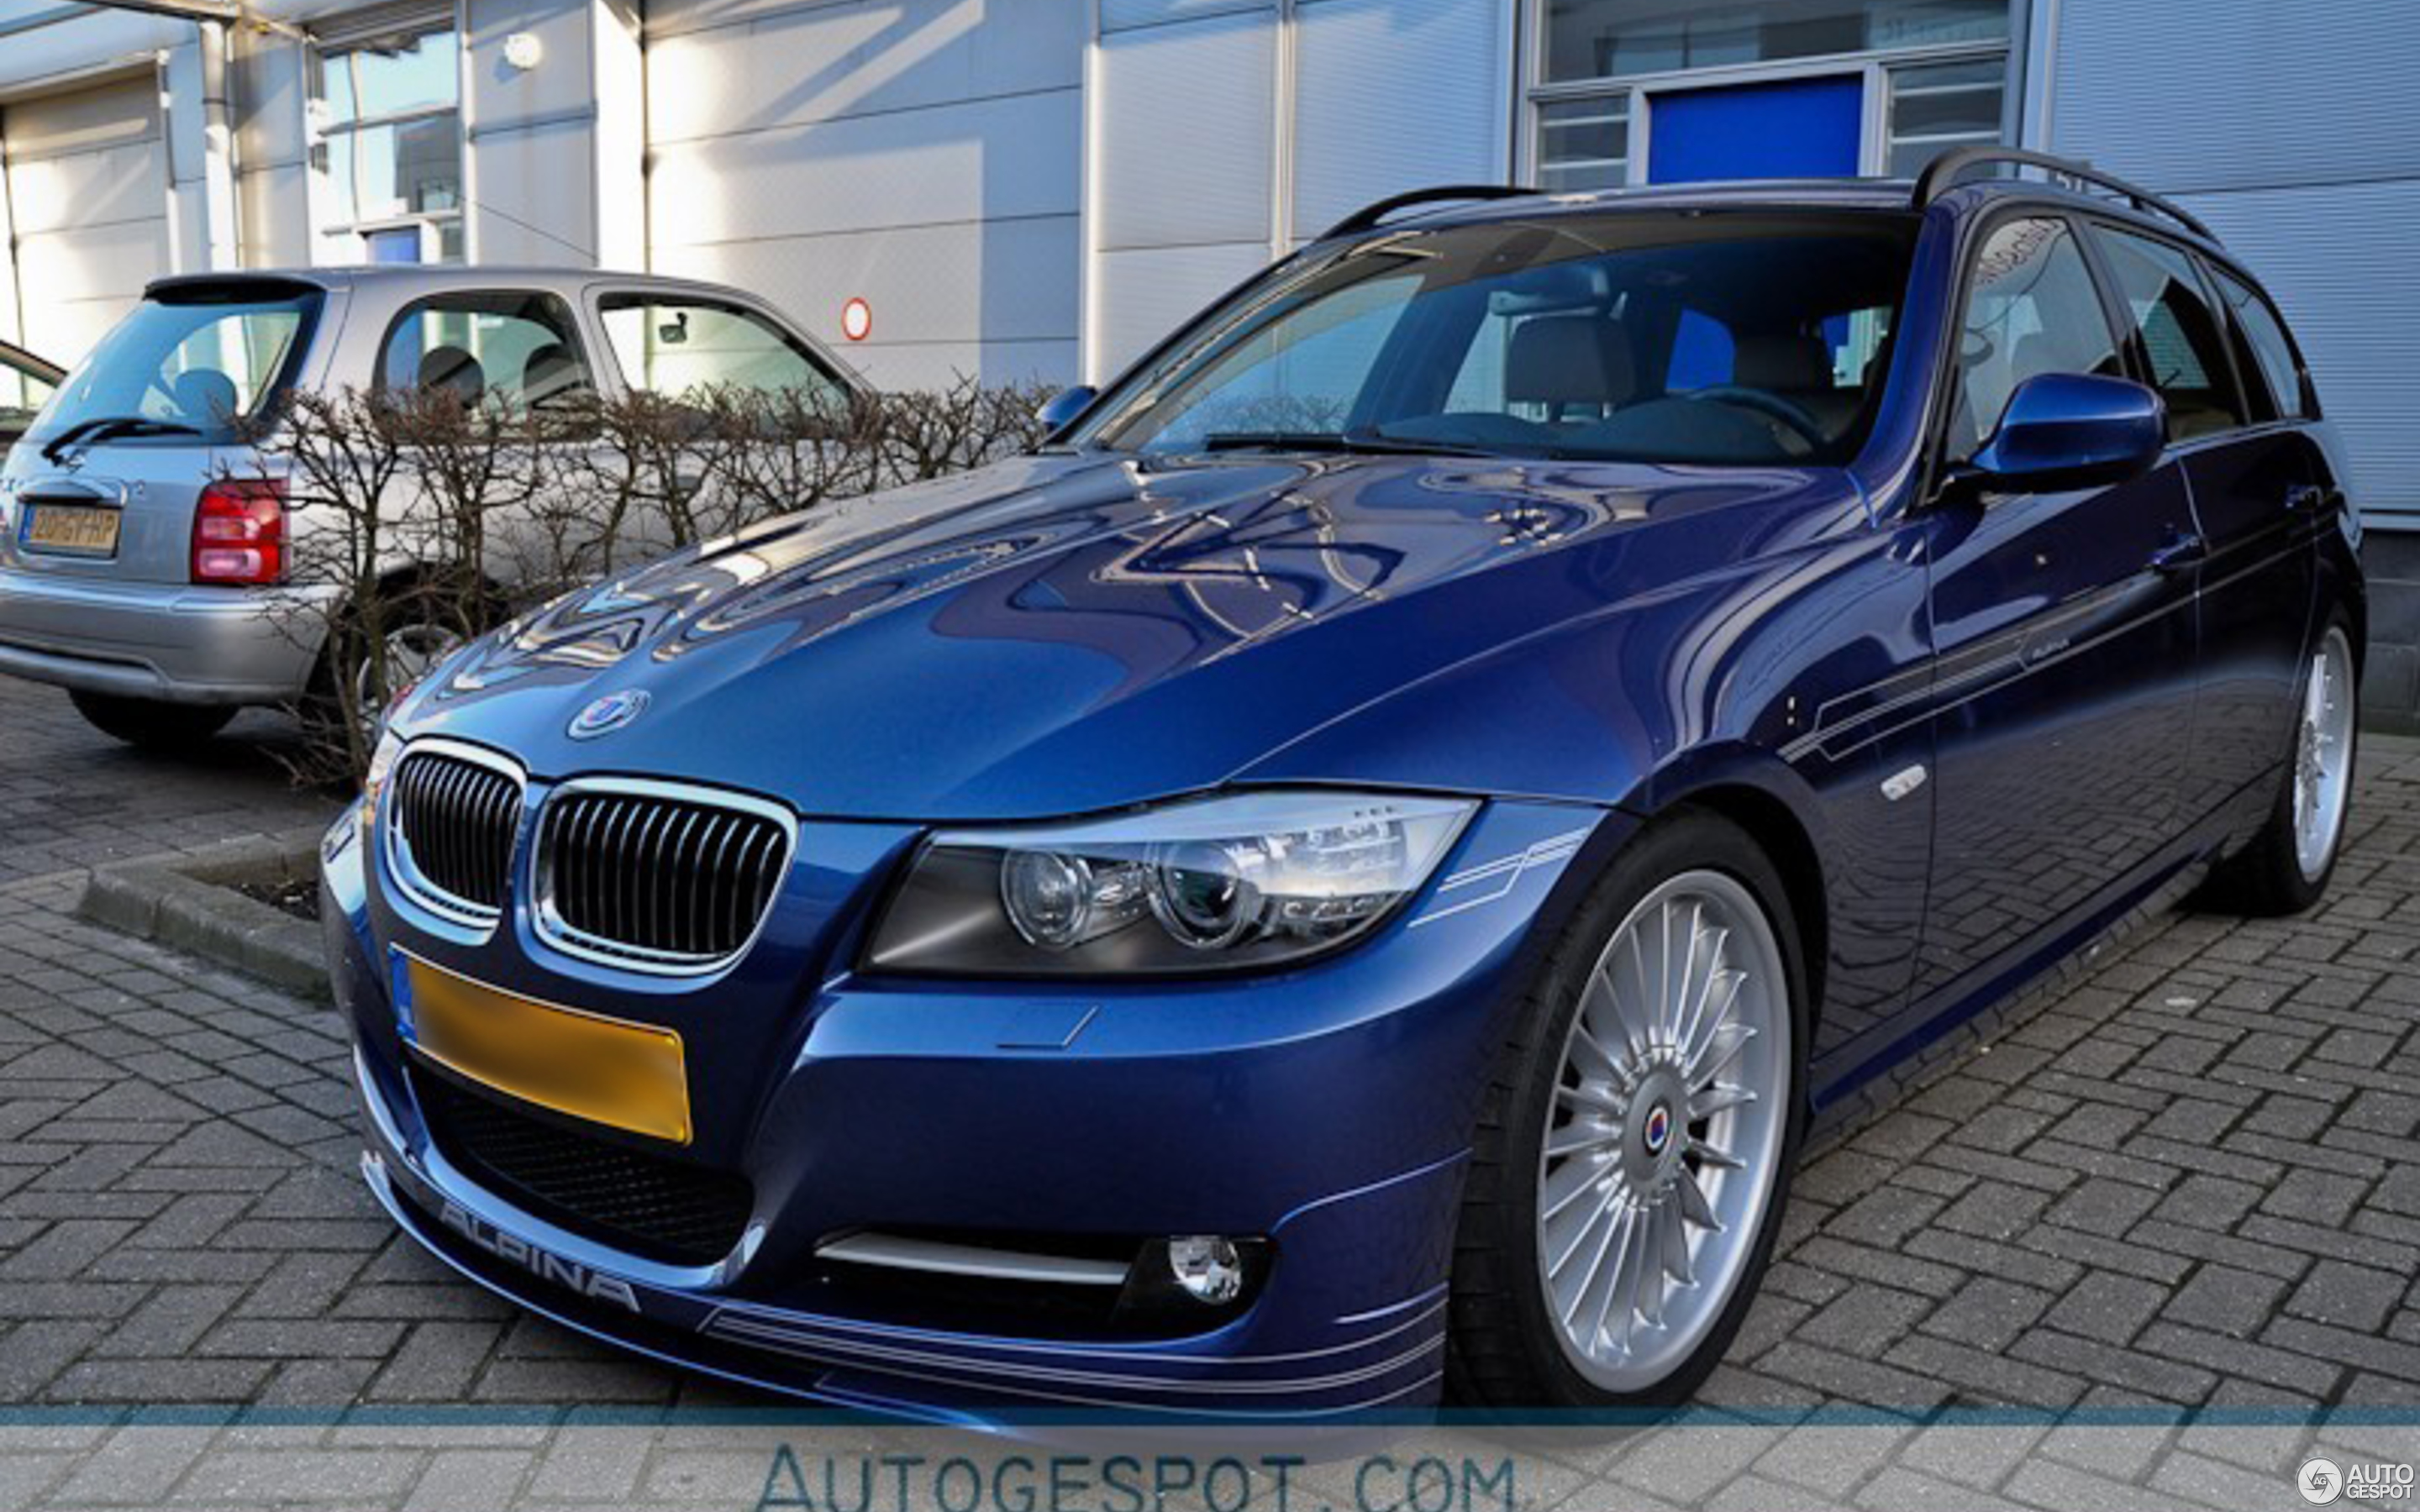 Alpina B3 Bi-turbo Touring 2009